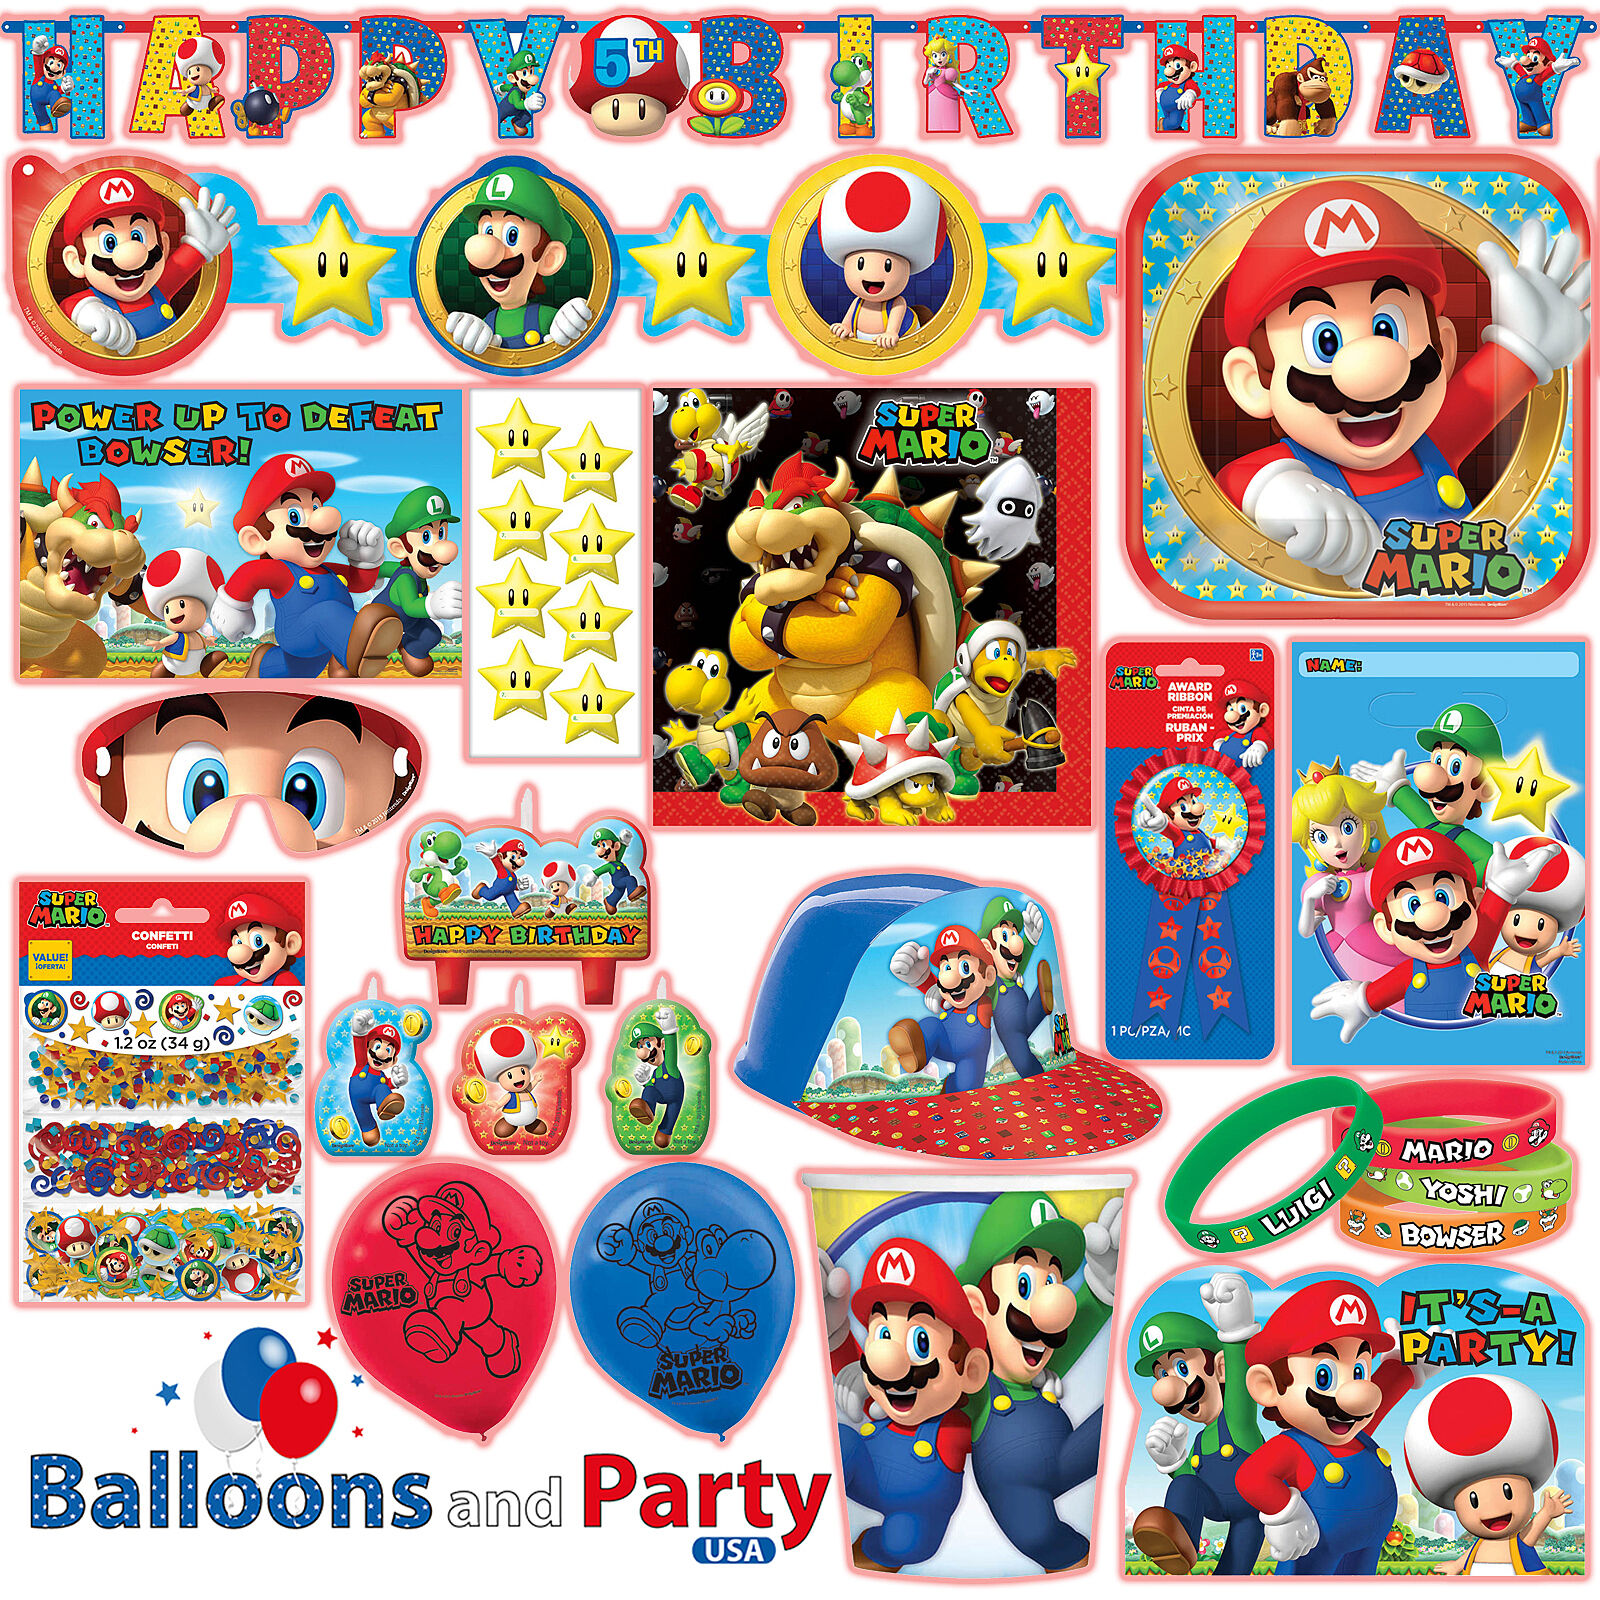 Nintendo super mario brothers postcard invitations 8ct party resntentobalflowflowcomponentncel monicamarmolfo Gallery